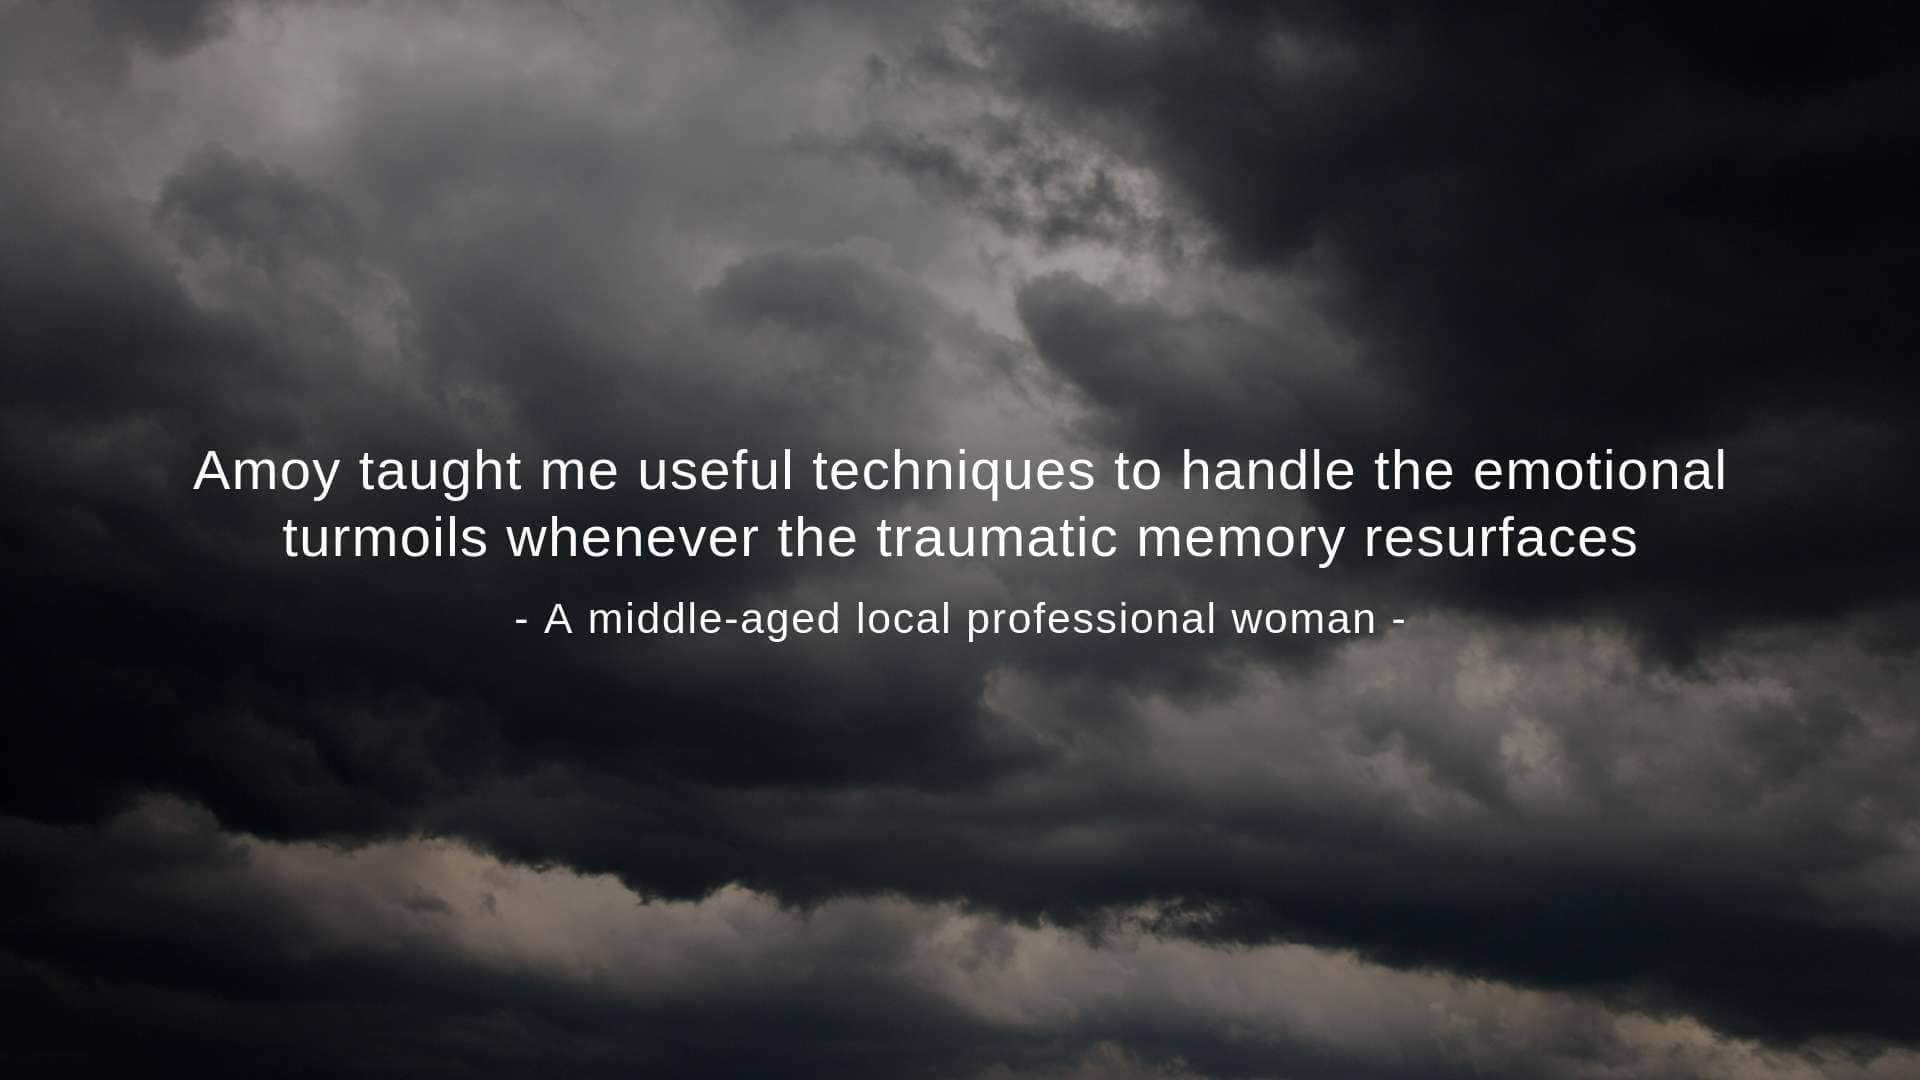 """She taught me useful techniques to handle the emotional turmoils whenever the traumatic memory resurfaces,"" a middle-aged local professional woman said"